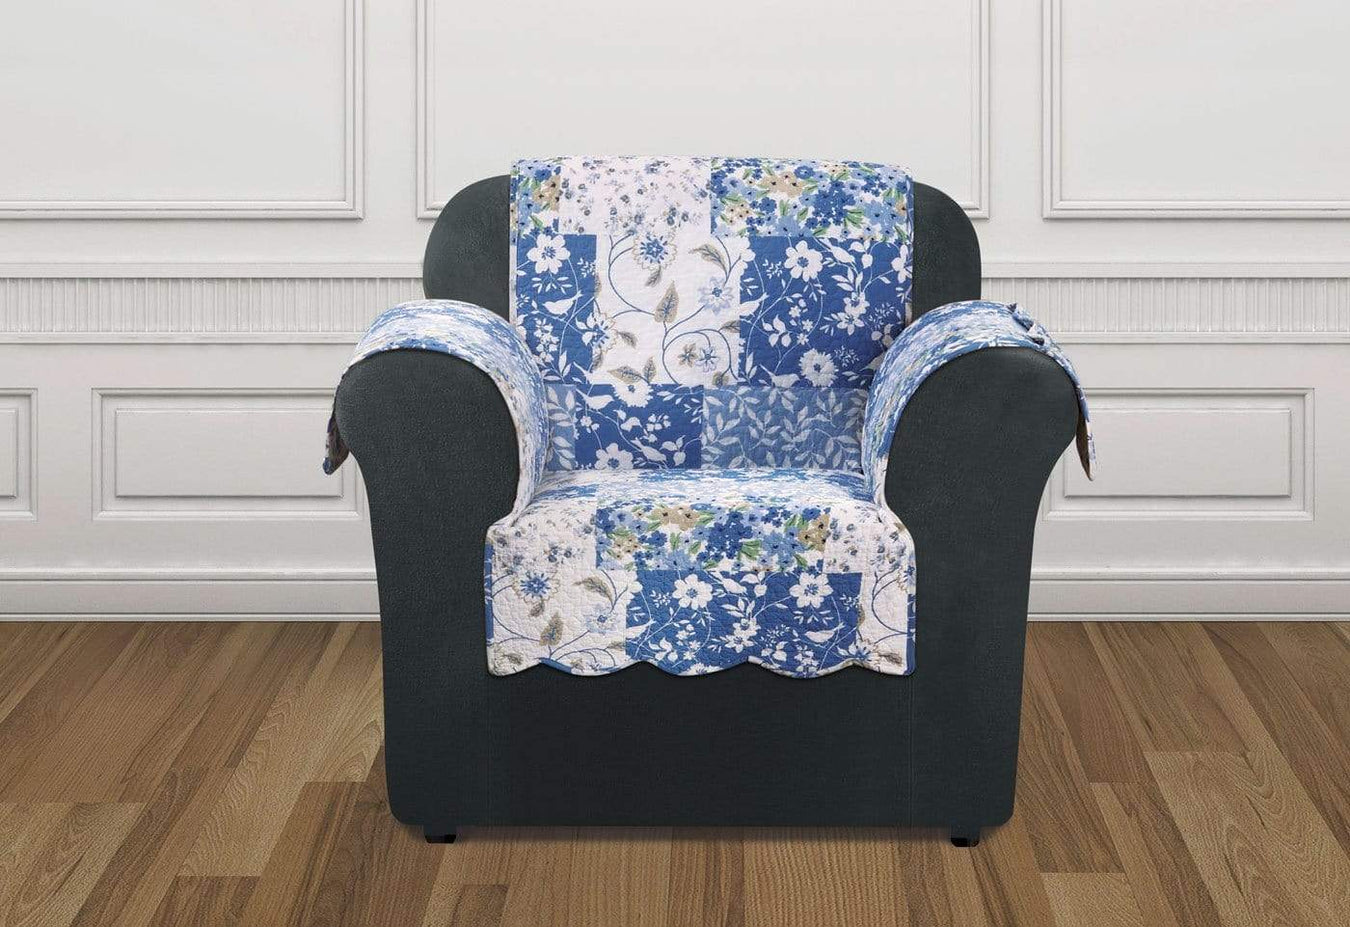 Heirloom Quilt Chair Furniture Cover  Chair Covers  Covers For